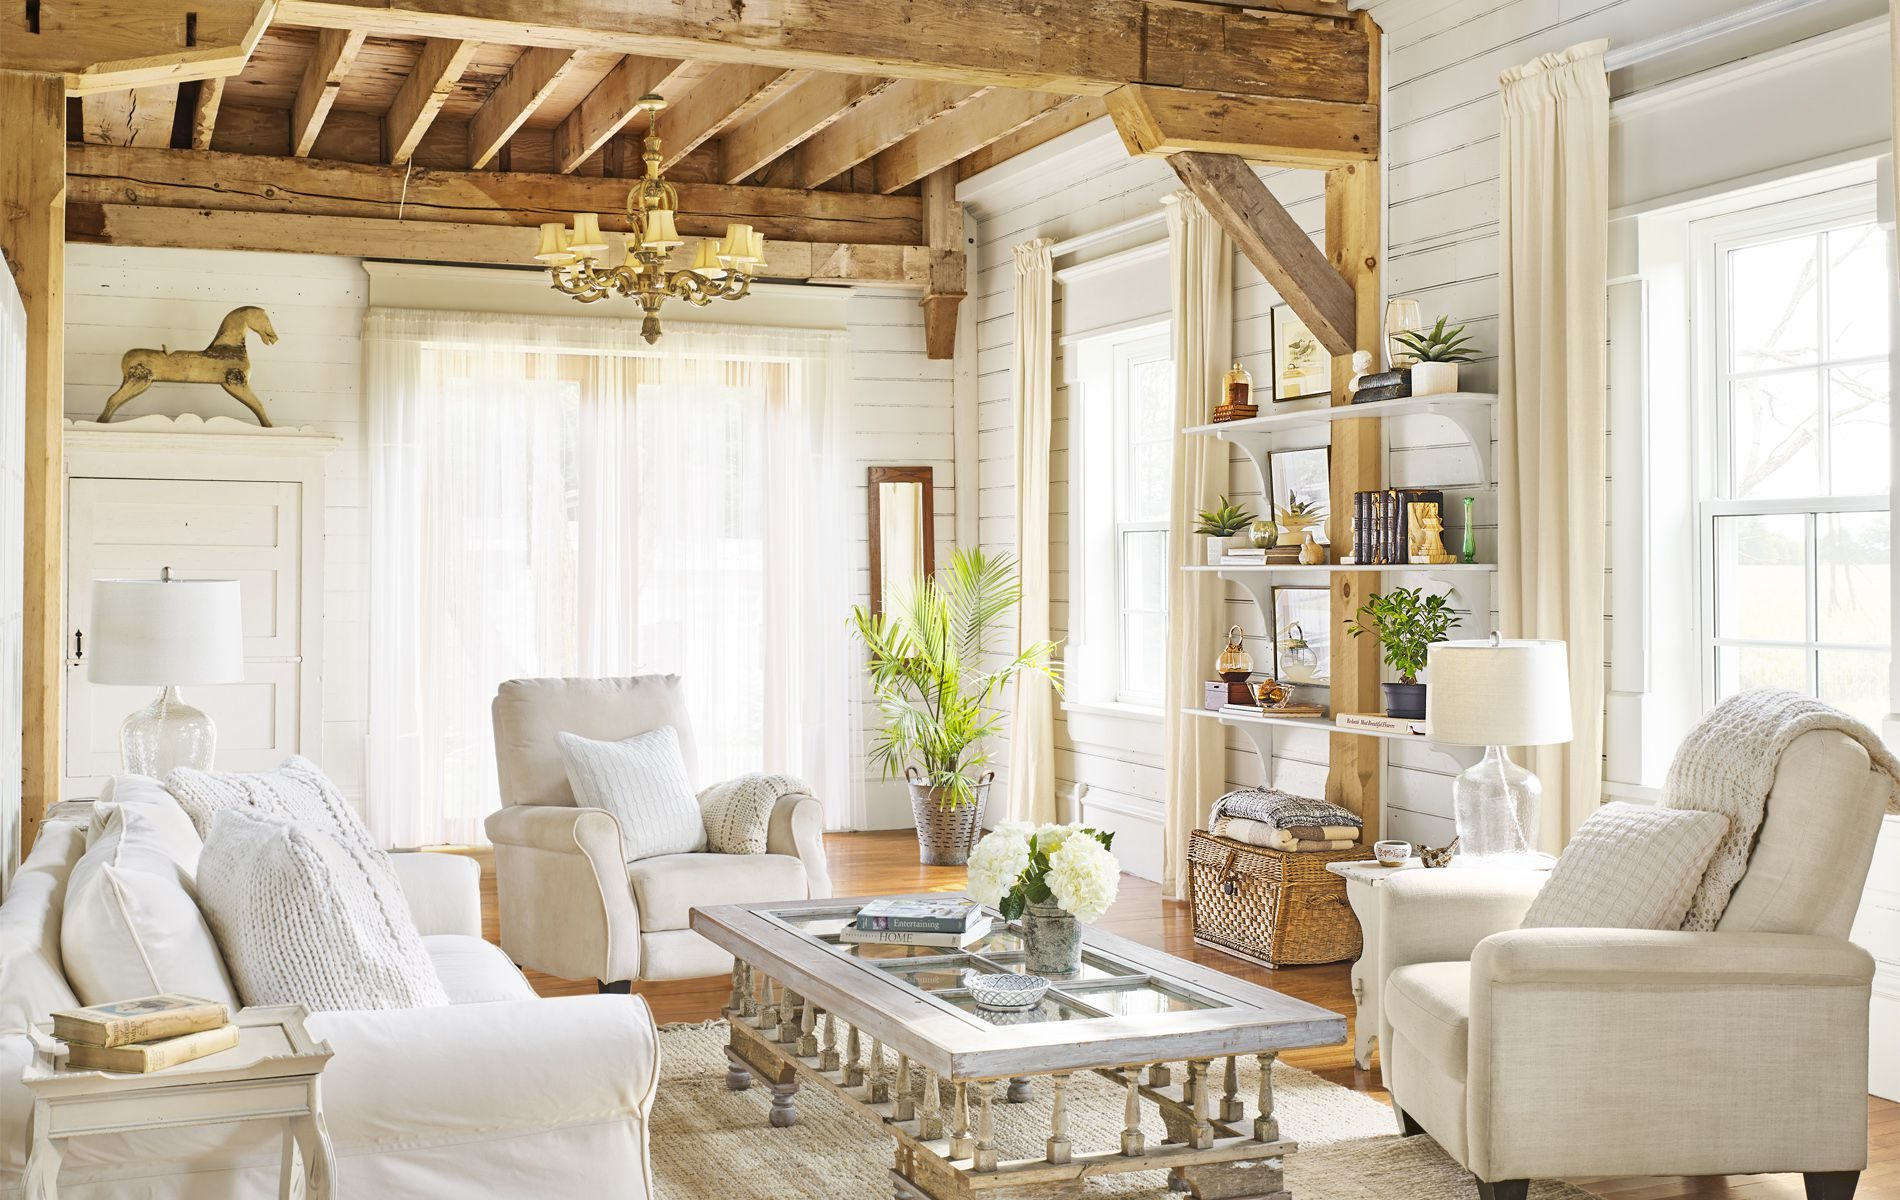 5 Super Easy Ways to Make Your Home Look Younger